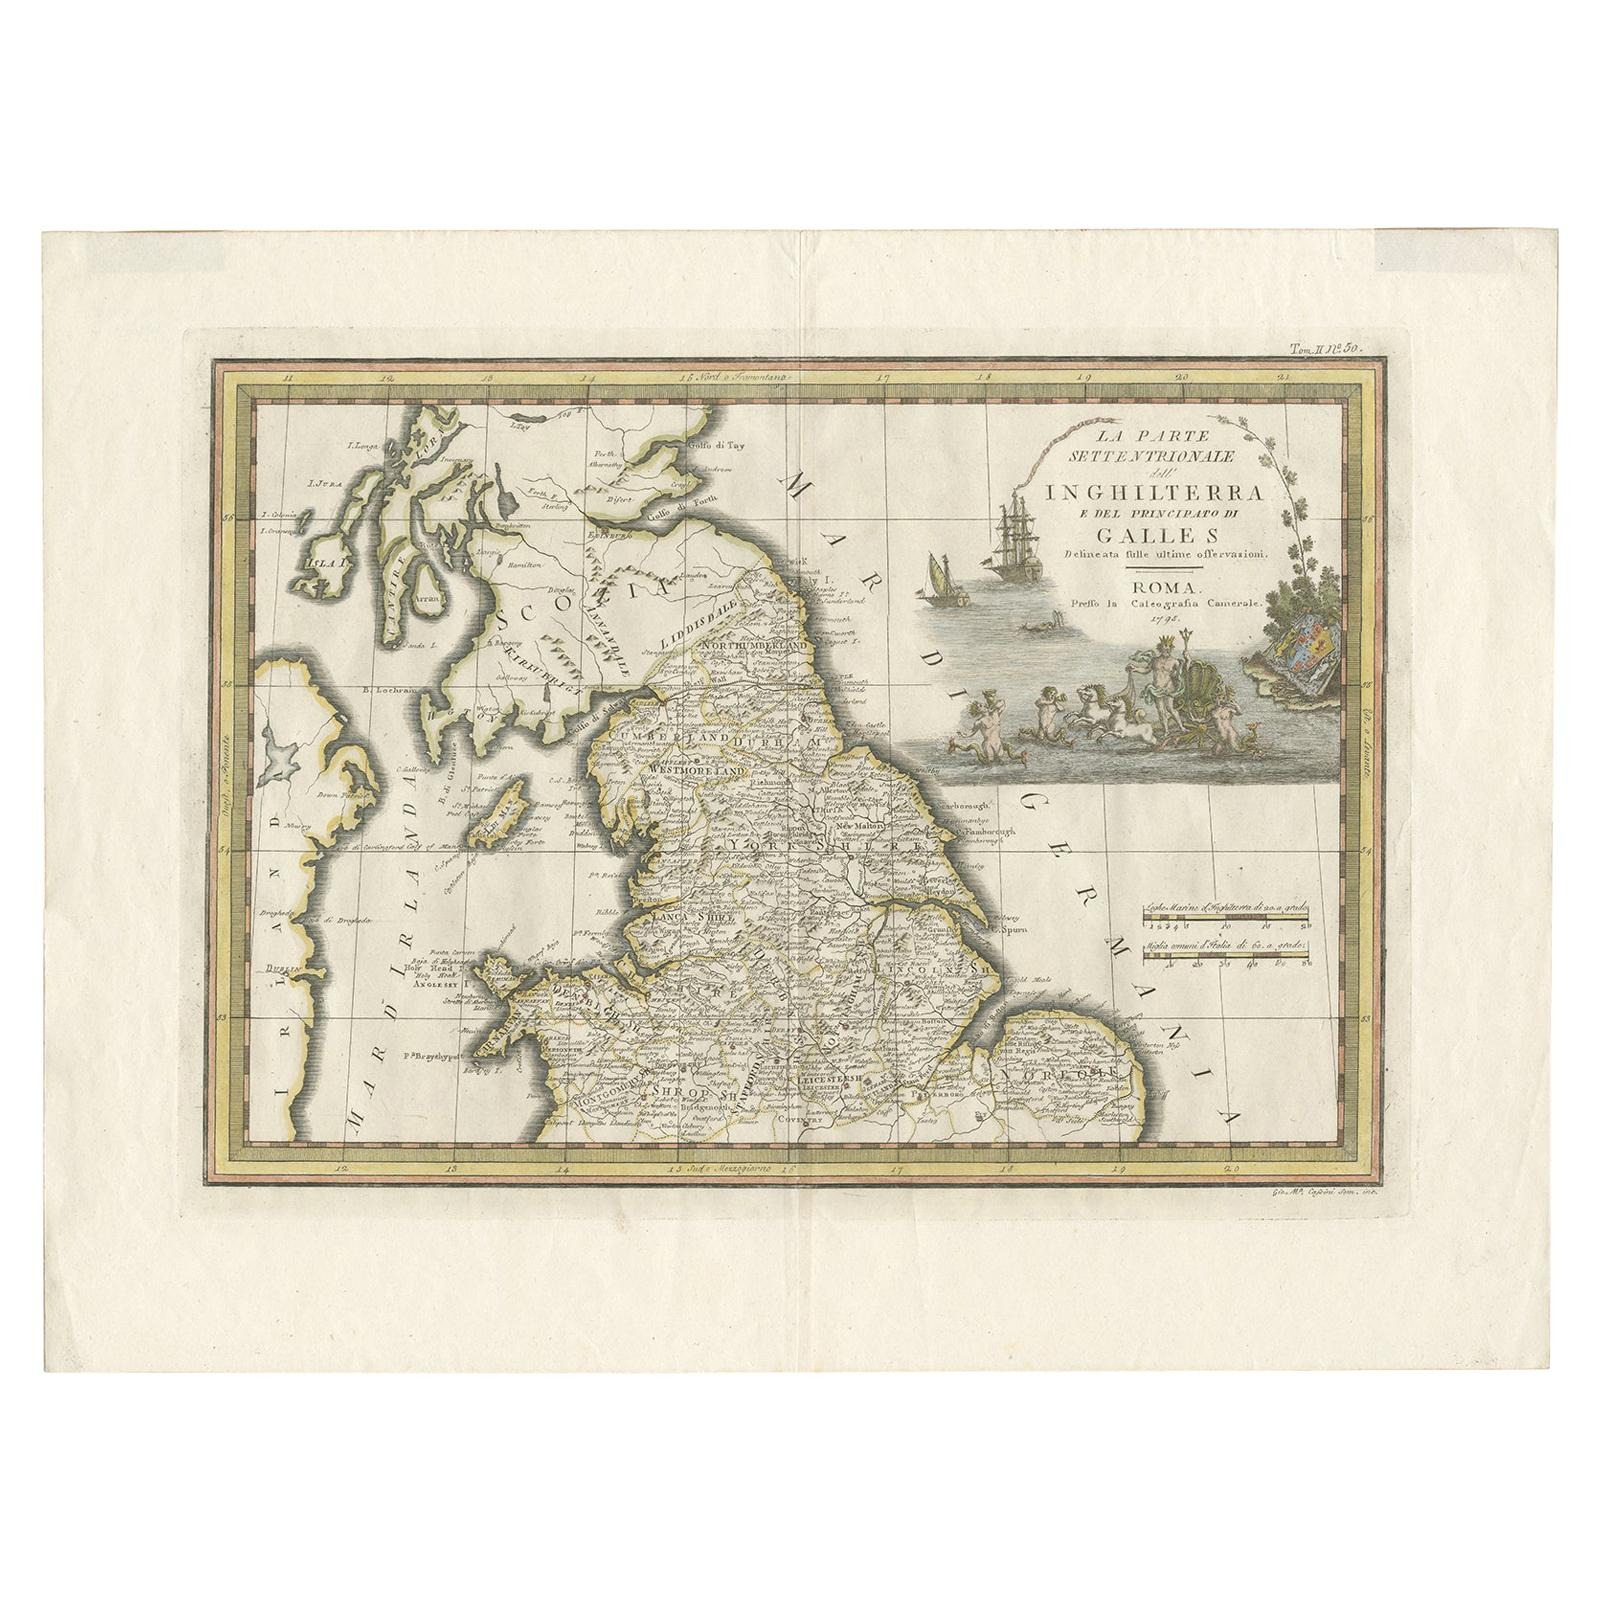 Antique Map of Northern England and Wales by Cassini, 'circa 1795'